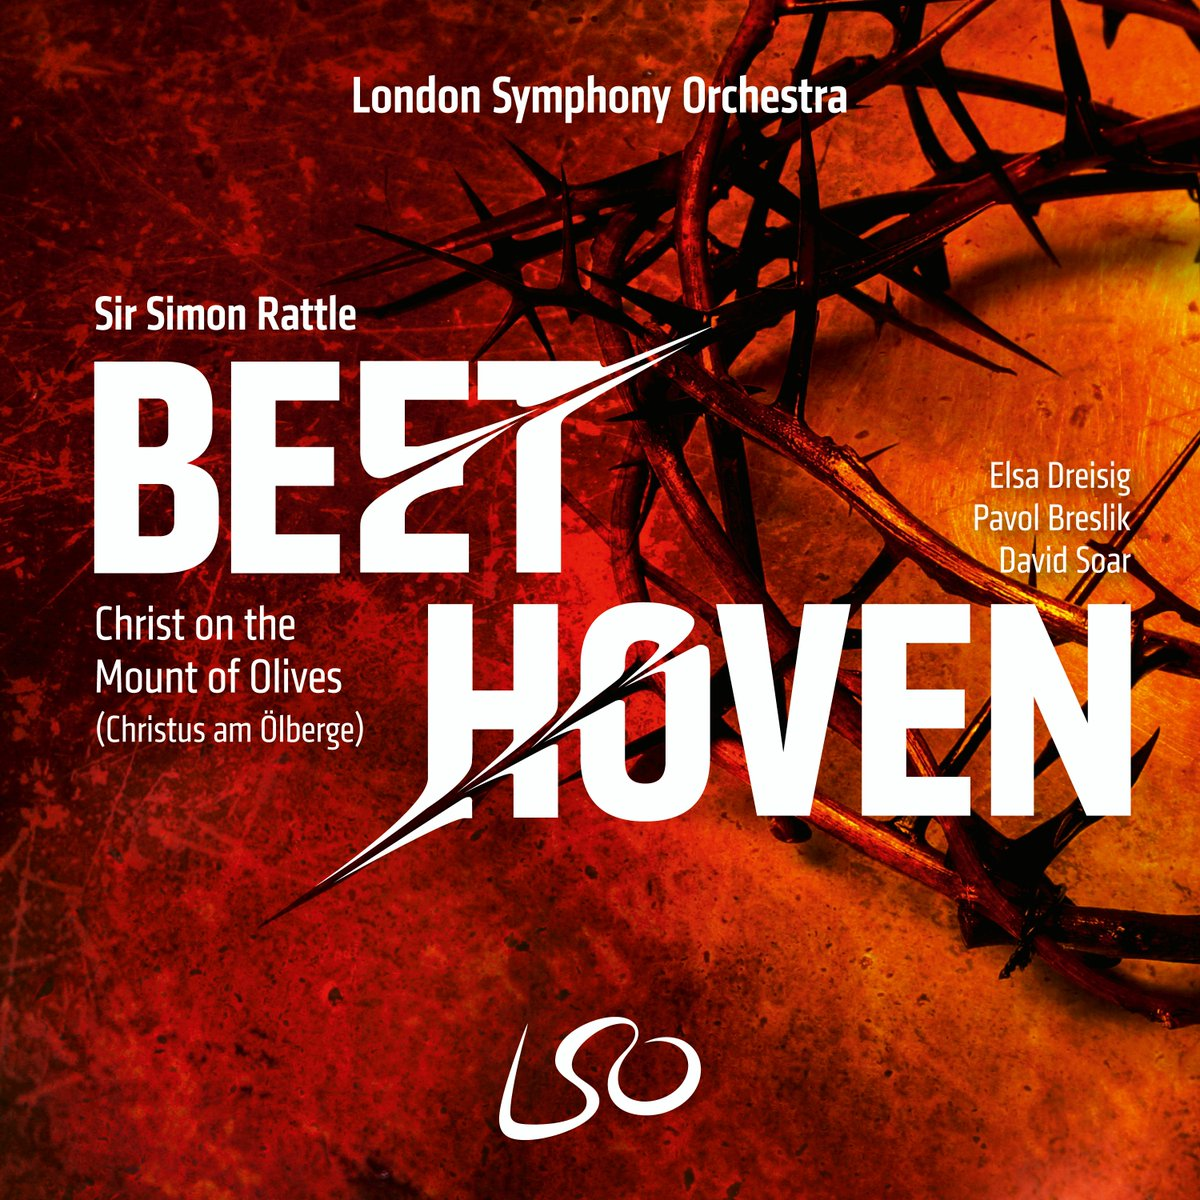 Coming this November, Sir Simon Rattle's new recording of 'Christ on the Mount of Olives' with Elsa Dreisig, @PavolBreslik, @DavidSoar76 and the @LSChorus. Pre-order or pre-add on @AppleMusic now here ➡️ https://t.co/SUefUIUvKS #beethoven2020 https://t.co/d4FUzDjYOq